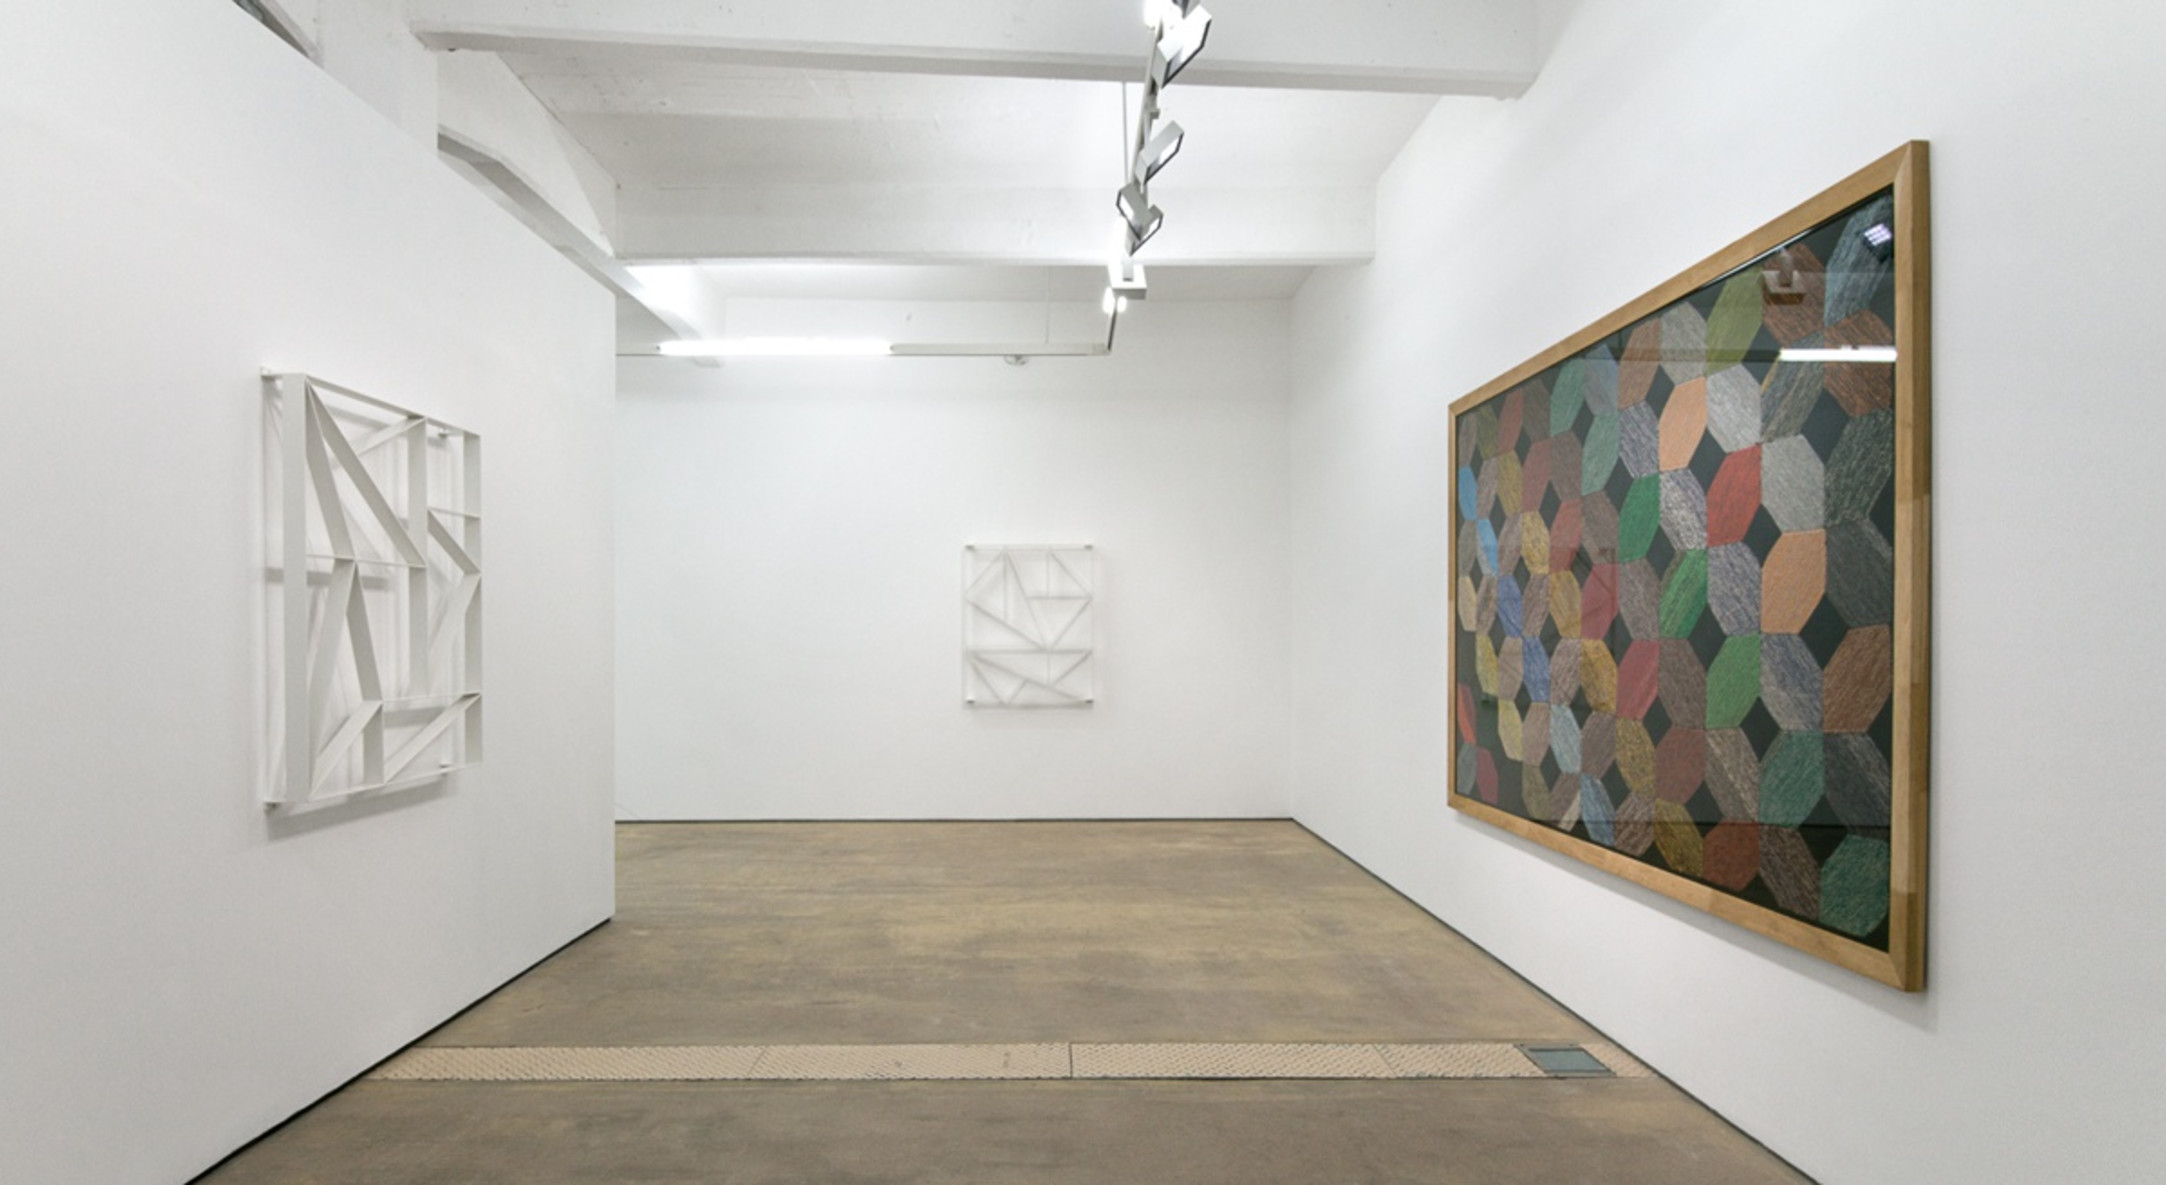 Installation view of Daniel Robert Hunziker, Thinking Things & You at Hales London